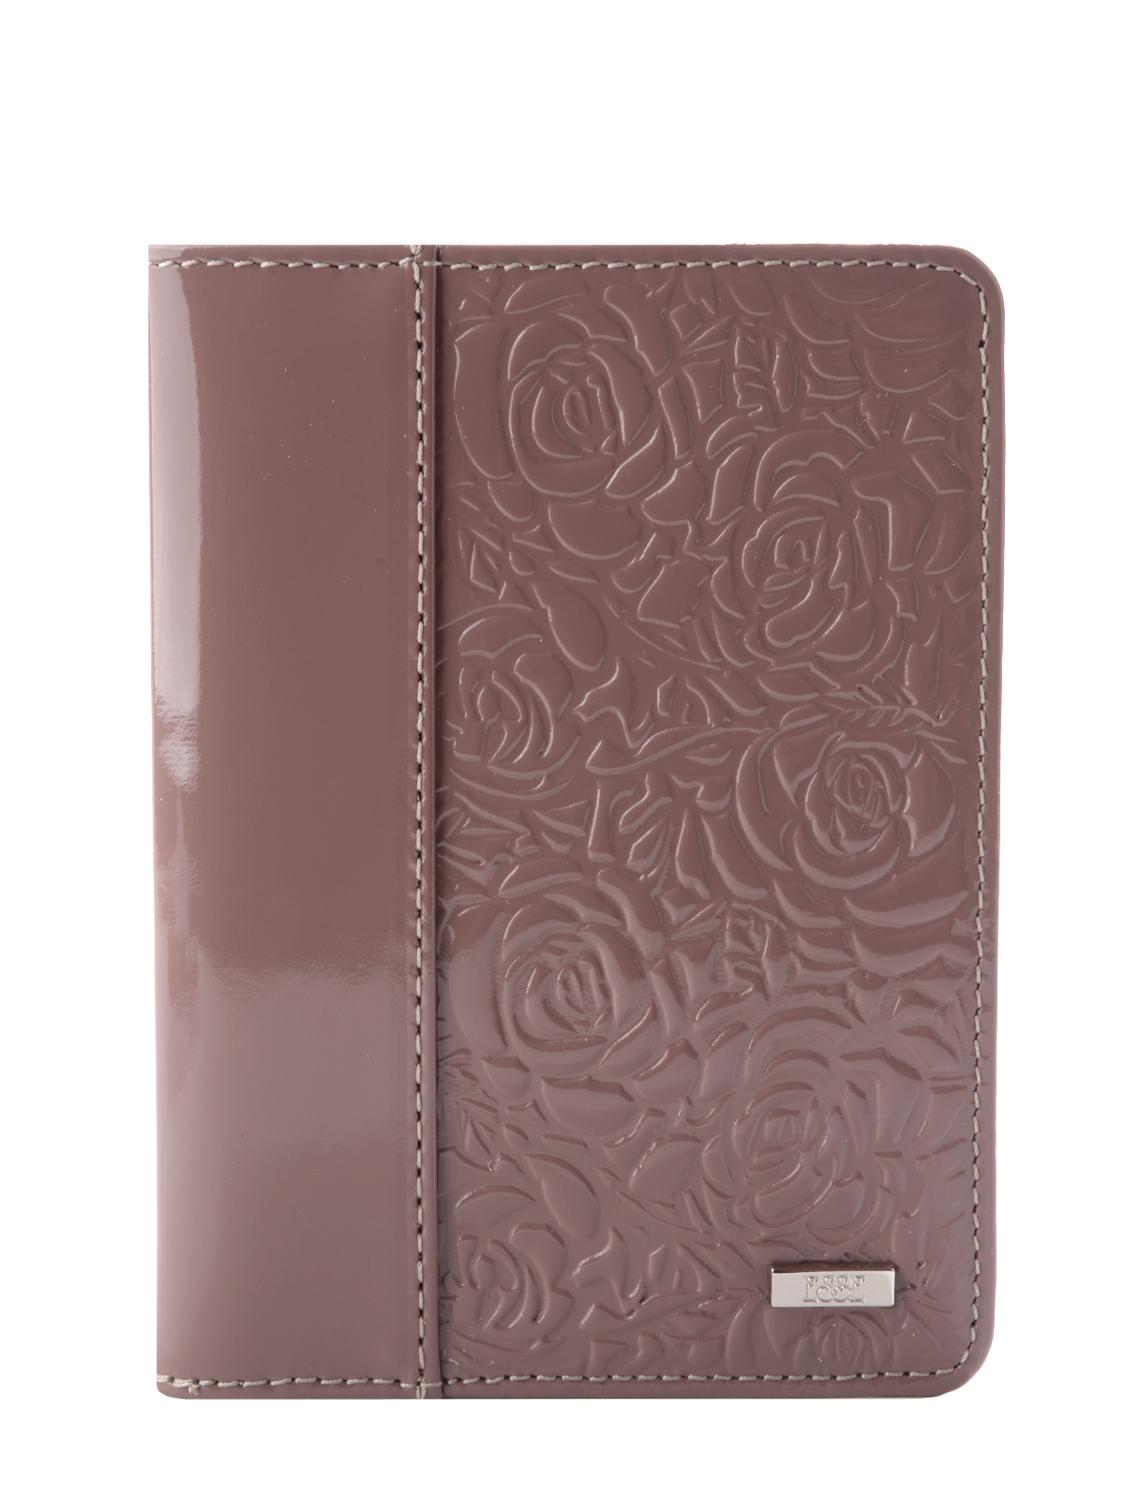 Passport Cover ESSE PAGE Passport Holder Travel Accessories Bags ID Bank Card Business Holder Case For Women Passport Cover Card Case Women Men Travel Credit Card Holder